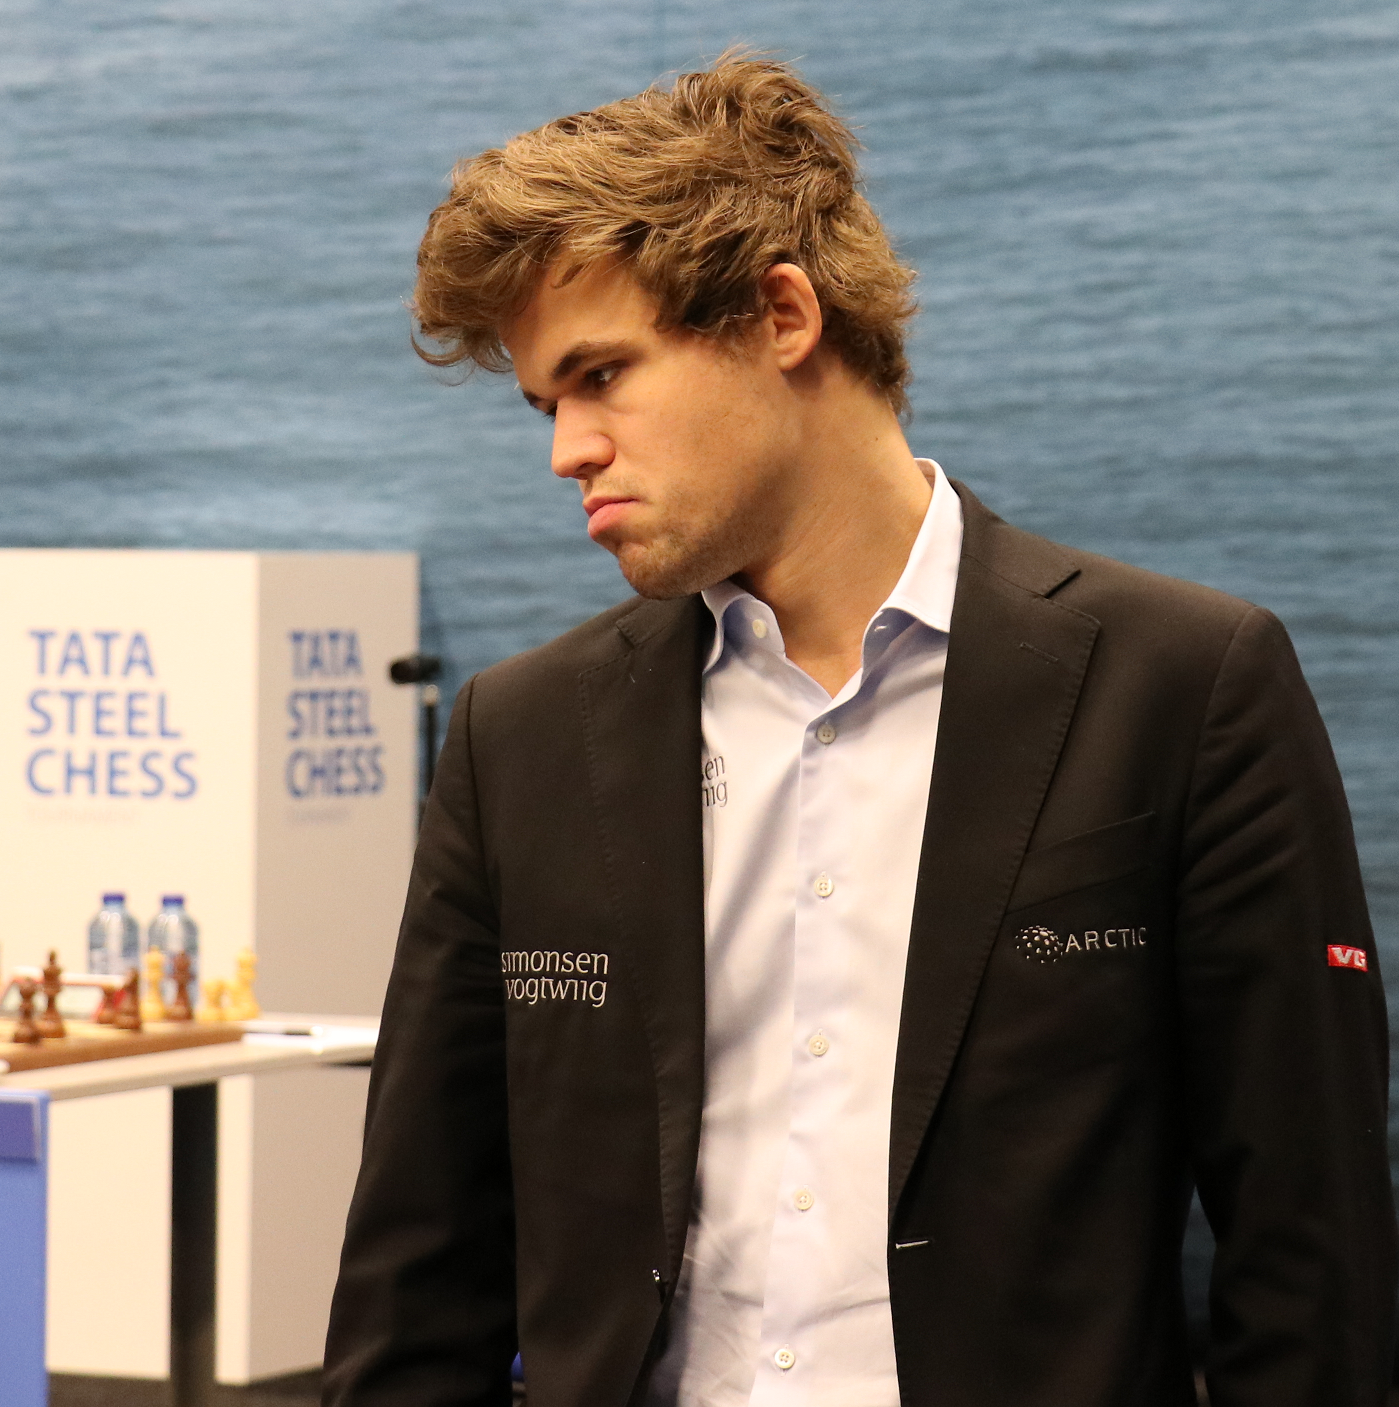 File:Tata Steel 2017 Magnus Carlsen (cropped).png - Wikimedia Commons